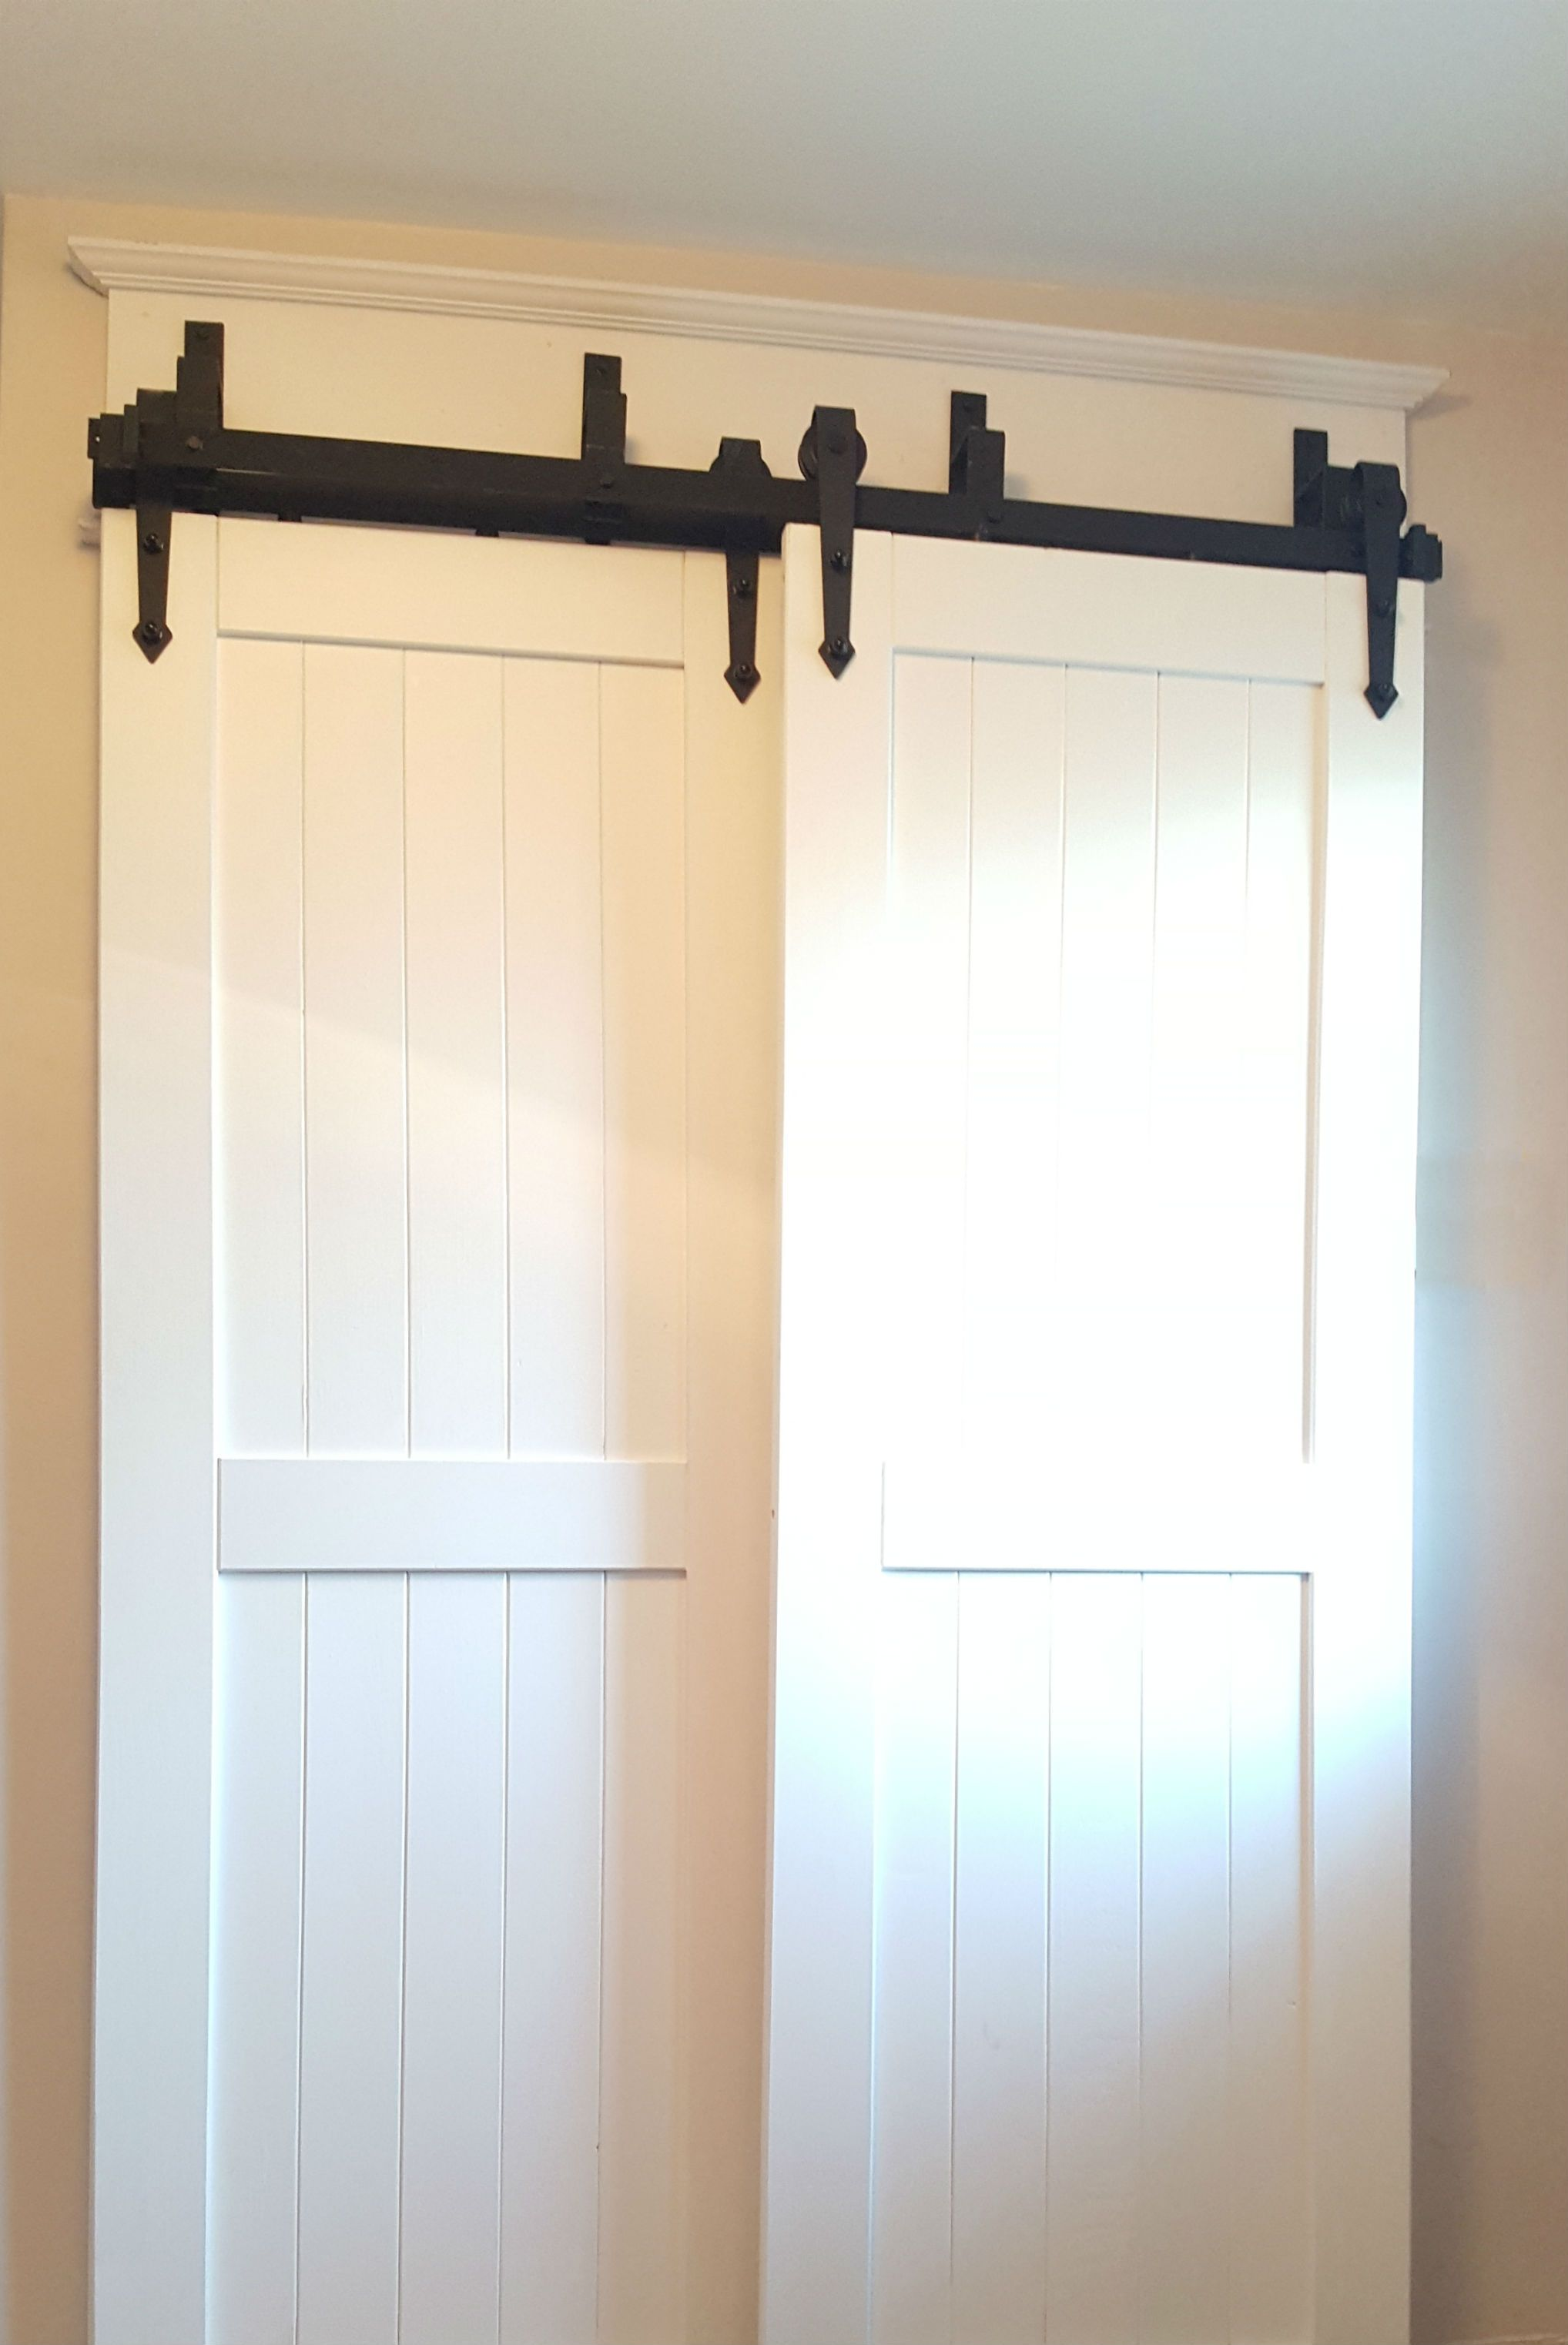 Bypass Barn Door Hardware Easy To Install Canada For The Home